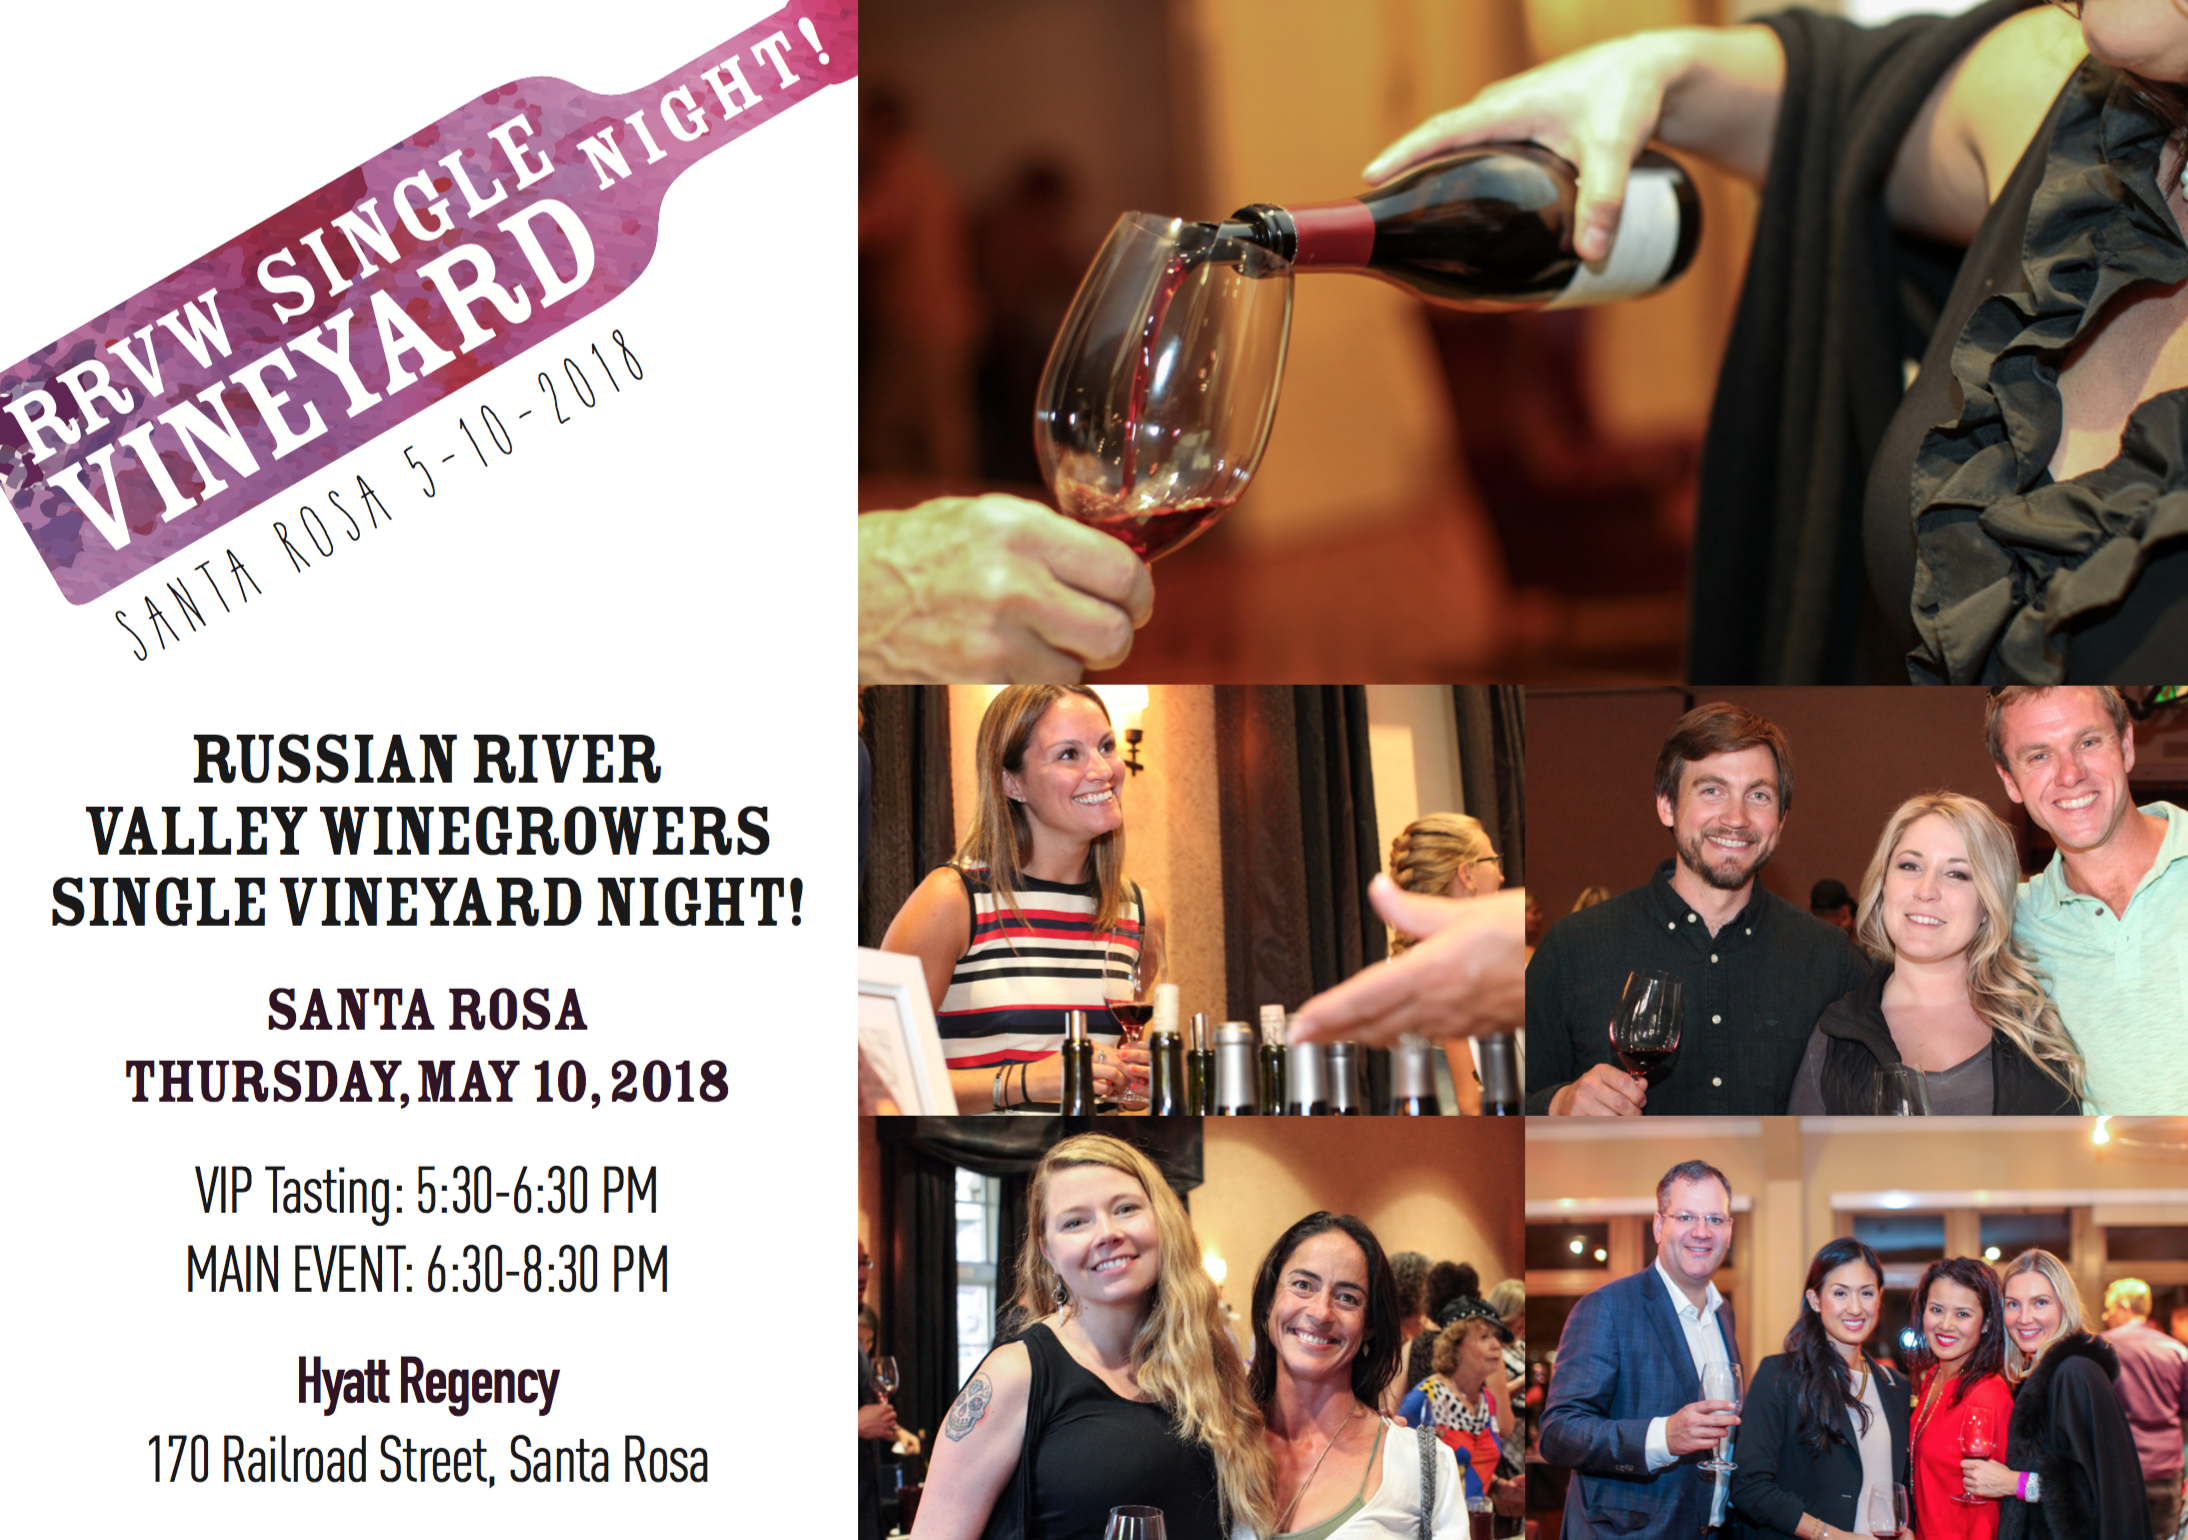 Join Russian River Valley Winegrowers for an amazing tasting experience of Russian River Valley single vineyard wines. More than 30 wineries will be pouring small-lot, single vineyard wines from the Russian River Valley, including Pinot Noir, Chardonnay, Zinfandel, Syrah and Sauvignon Blanc. Guests will dine on delicious appetizers.  The VIP Experience  A limited number of VIP tickets are available. Enter one hour early beginning at 5:30pm and get the chance to meet the winemaker and recieve exclusive tastings of rare, limited release and tasting room wines only wines.  Purchase Tickets ->   Click Here